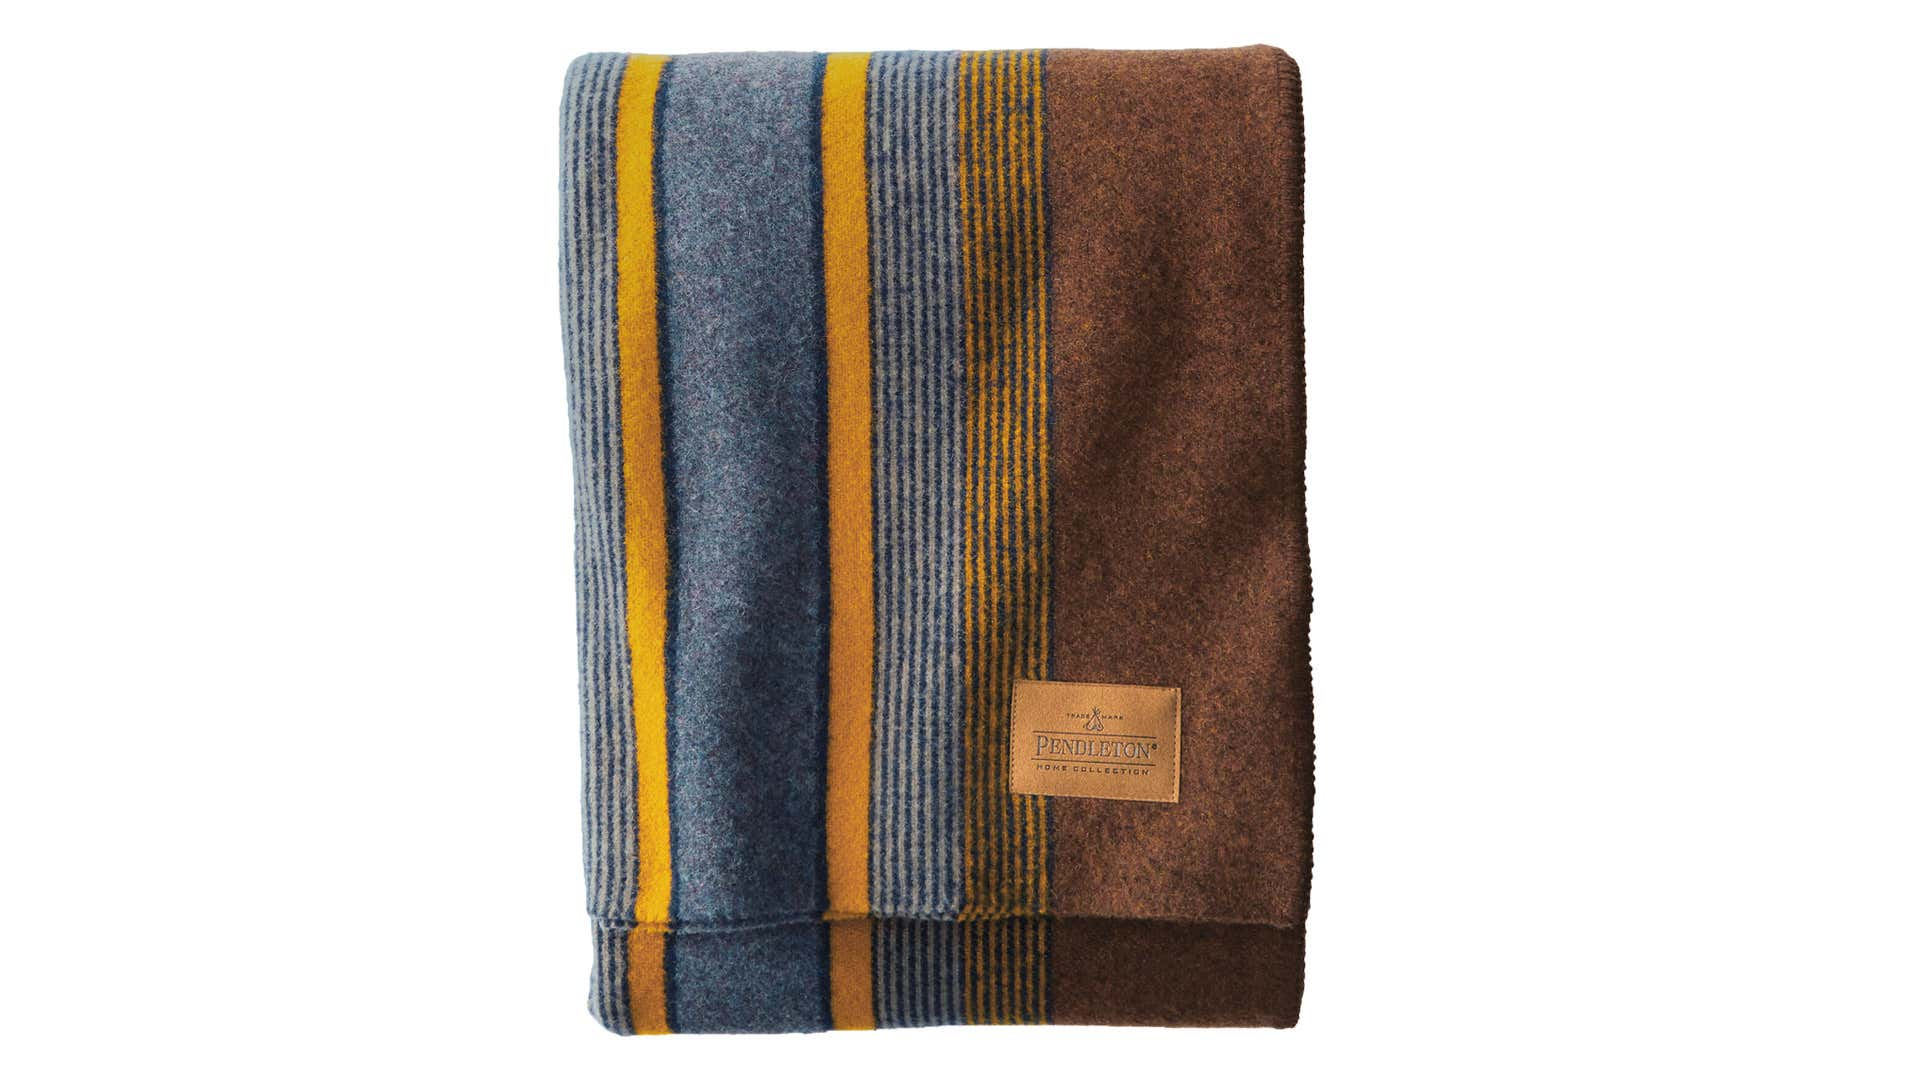 A striped Pendleton wool blanket is folded into a small rectangle.